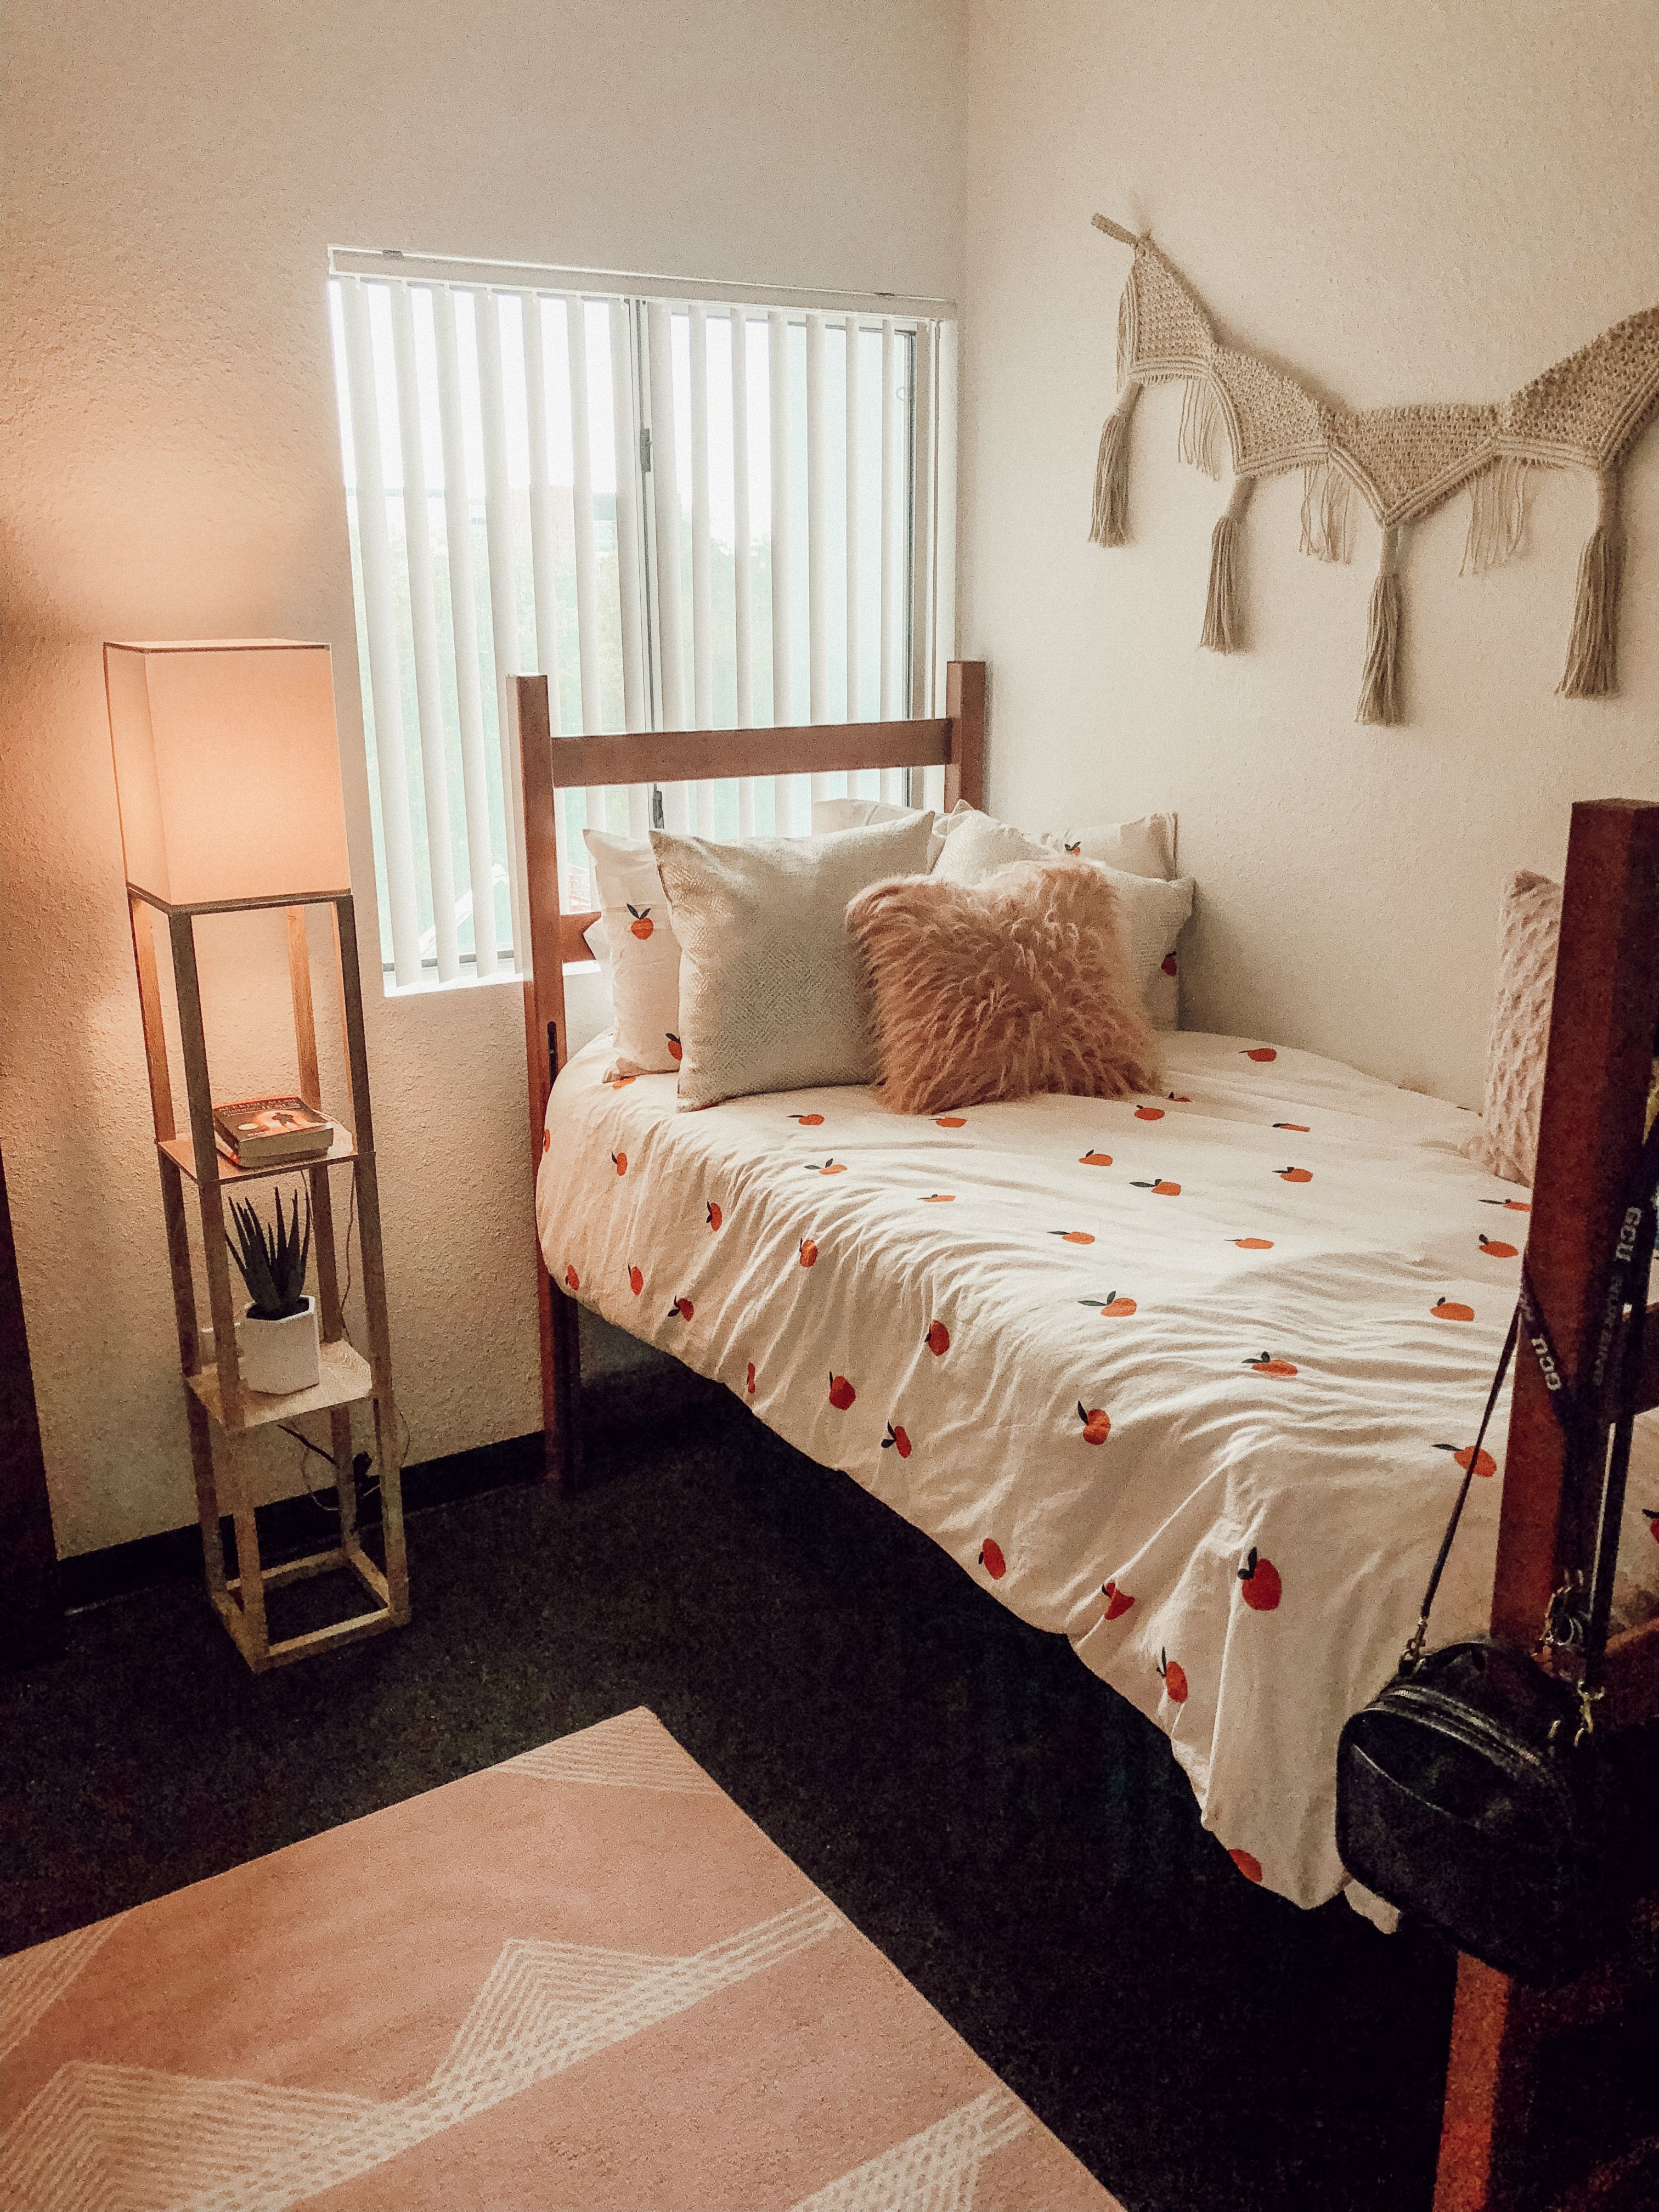 Groovy My Dorm Room At Grand Canyon University College In 2019 Download Free Architecture Designs Rallybritishbridgeorg